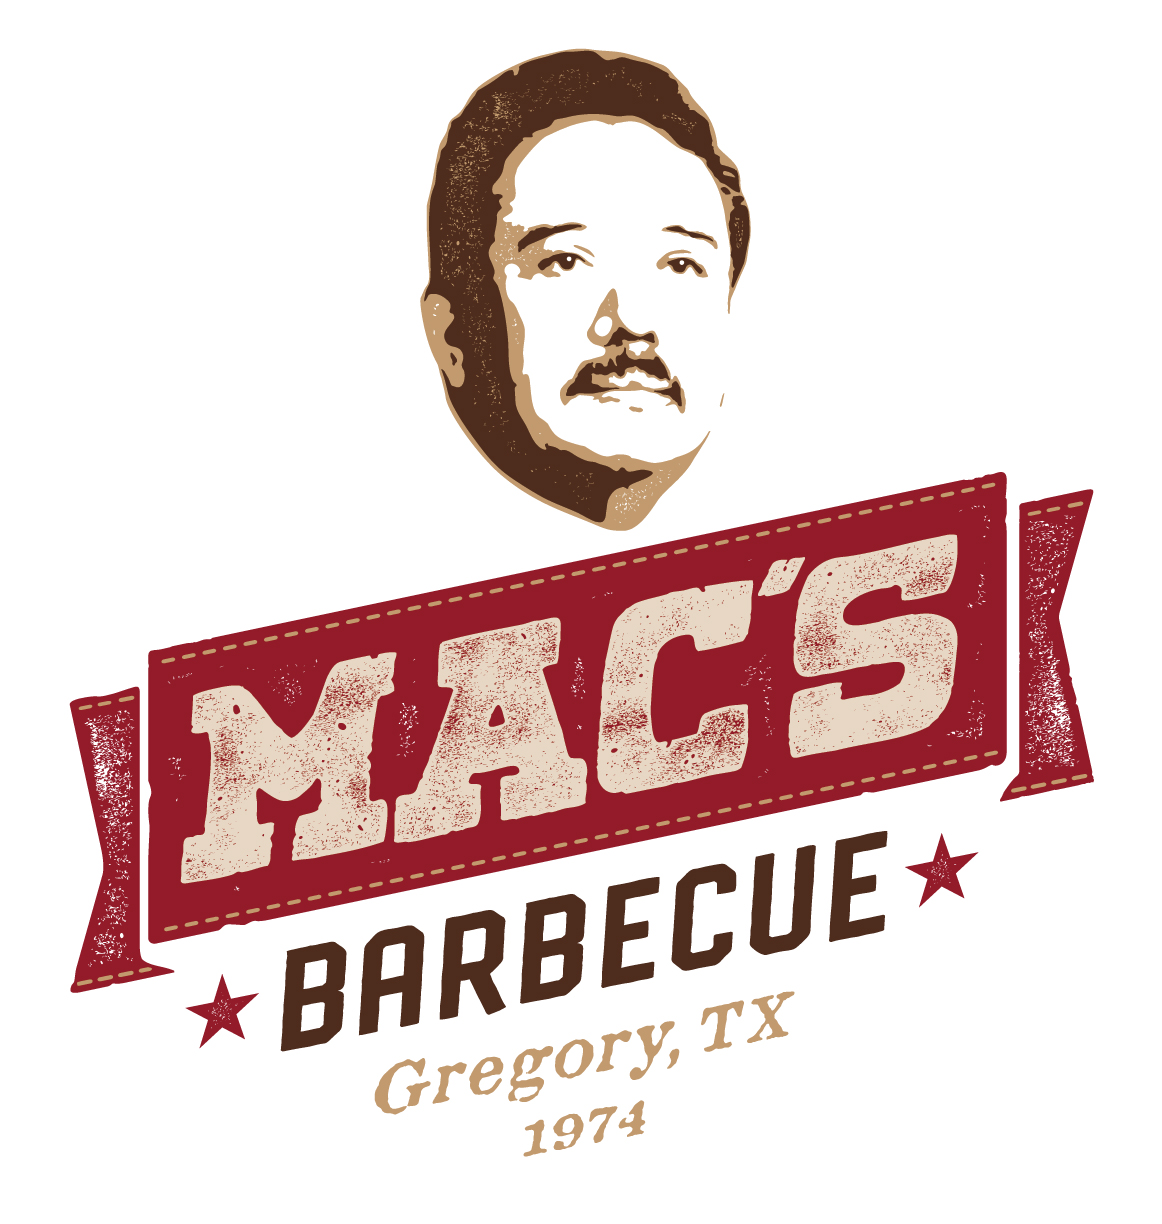 Macs Barbecue logo design